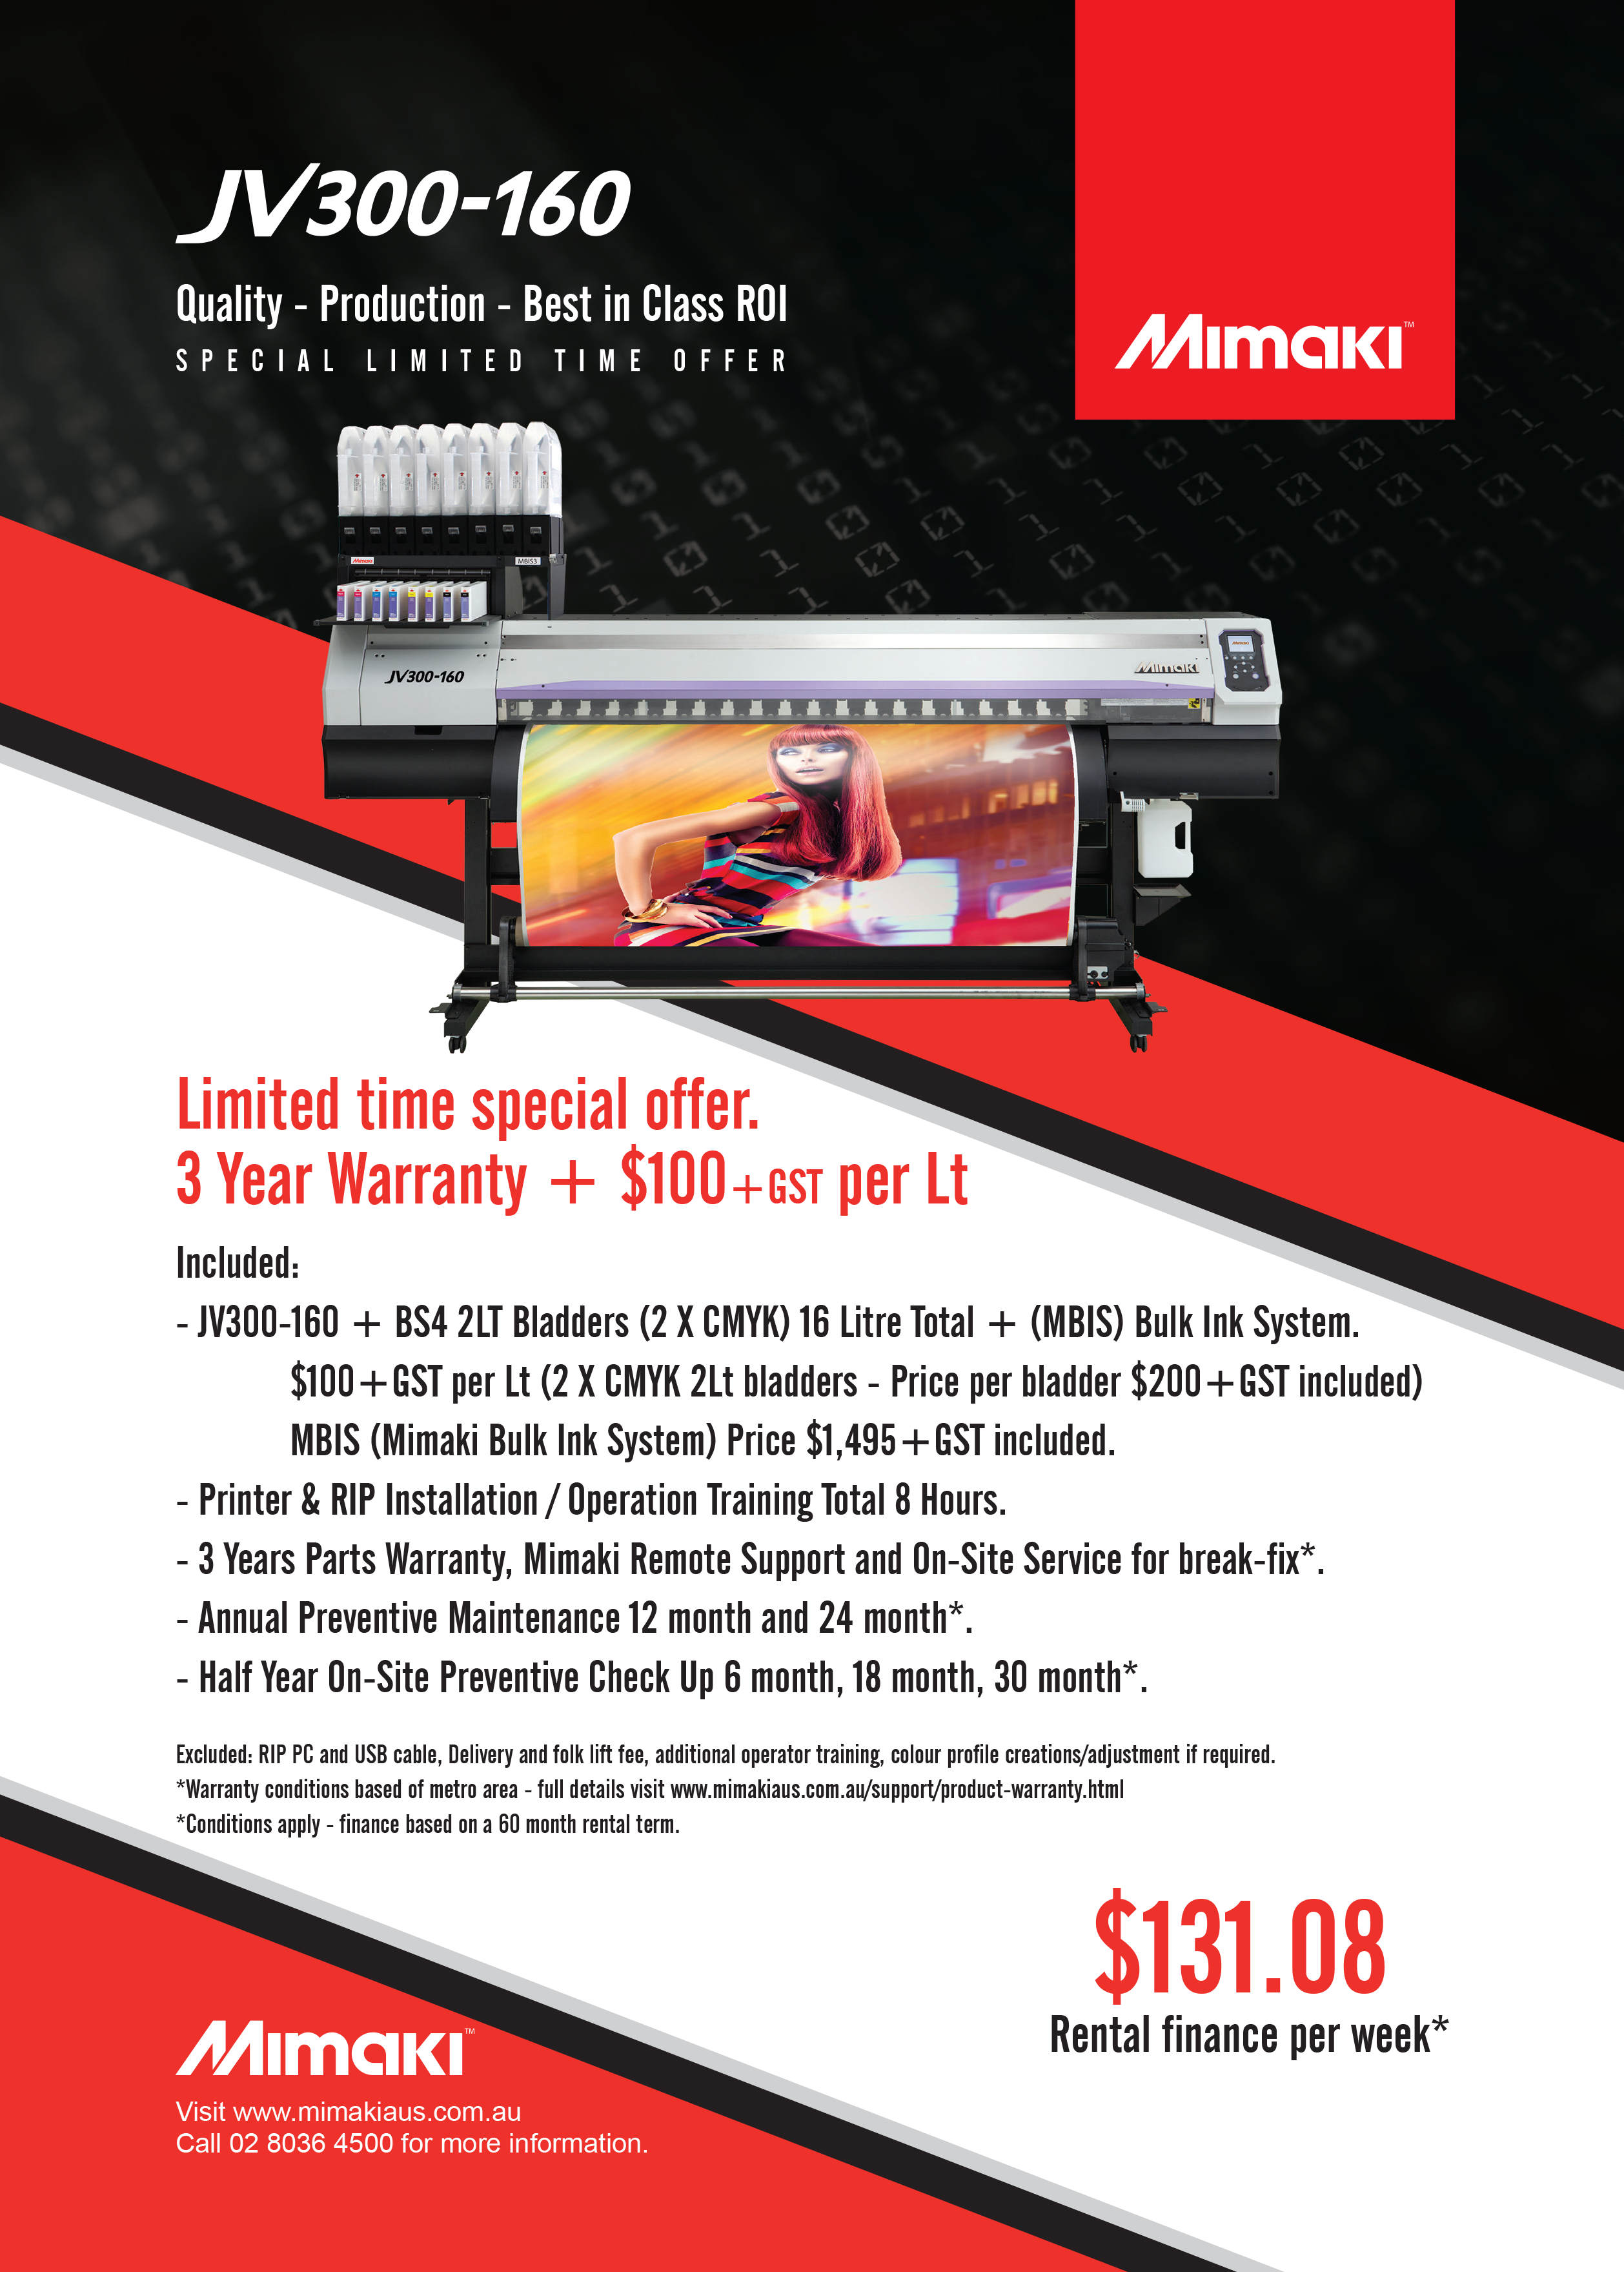 JV300-160 Limited Time Special Offer   Promotions   News